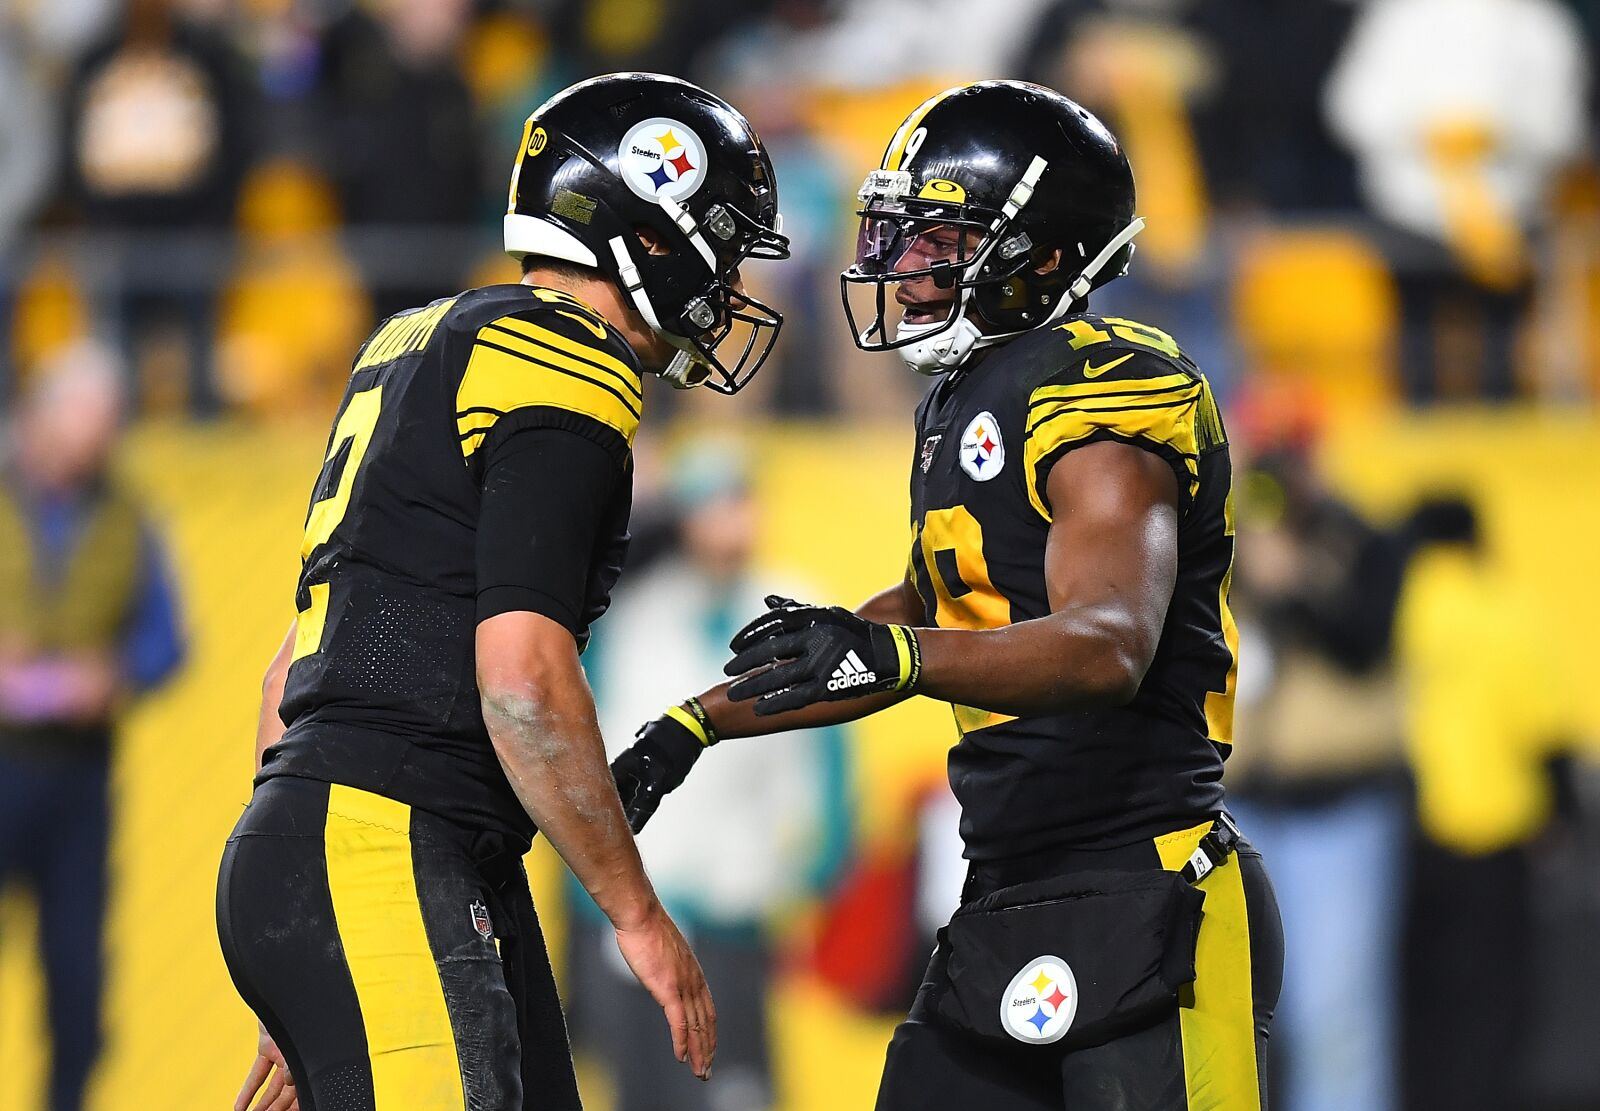 JuJu Smith-Schuster could be trending up for the Steelers